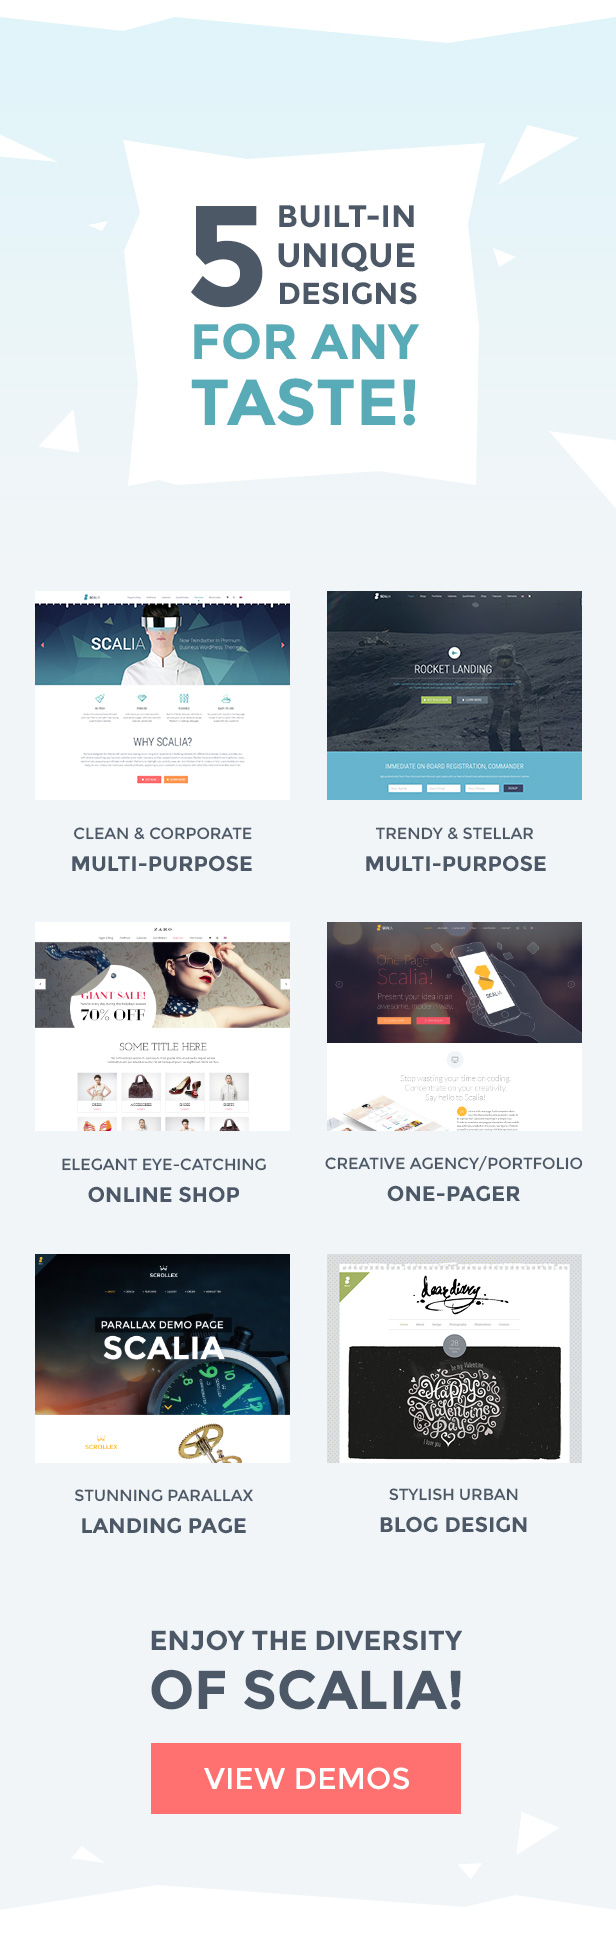 Scalia - Multi-Concept Business, Shop, One-Page, Blog Theme - 1